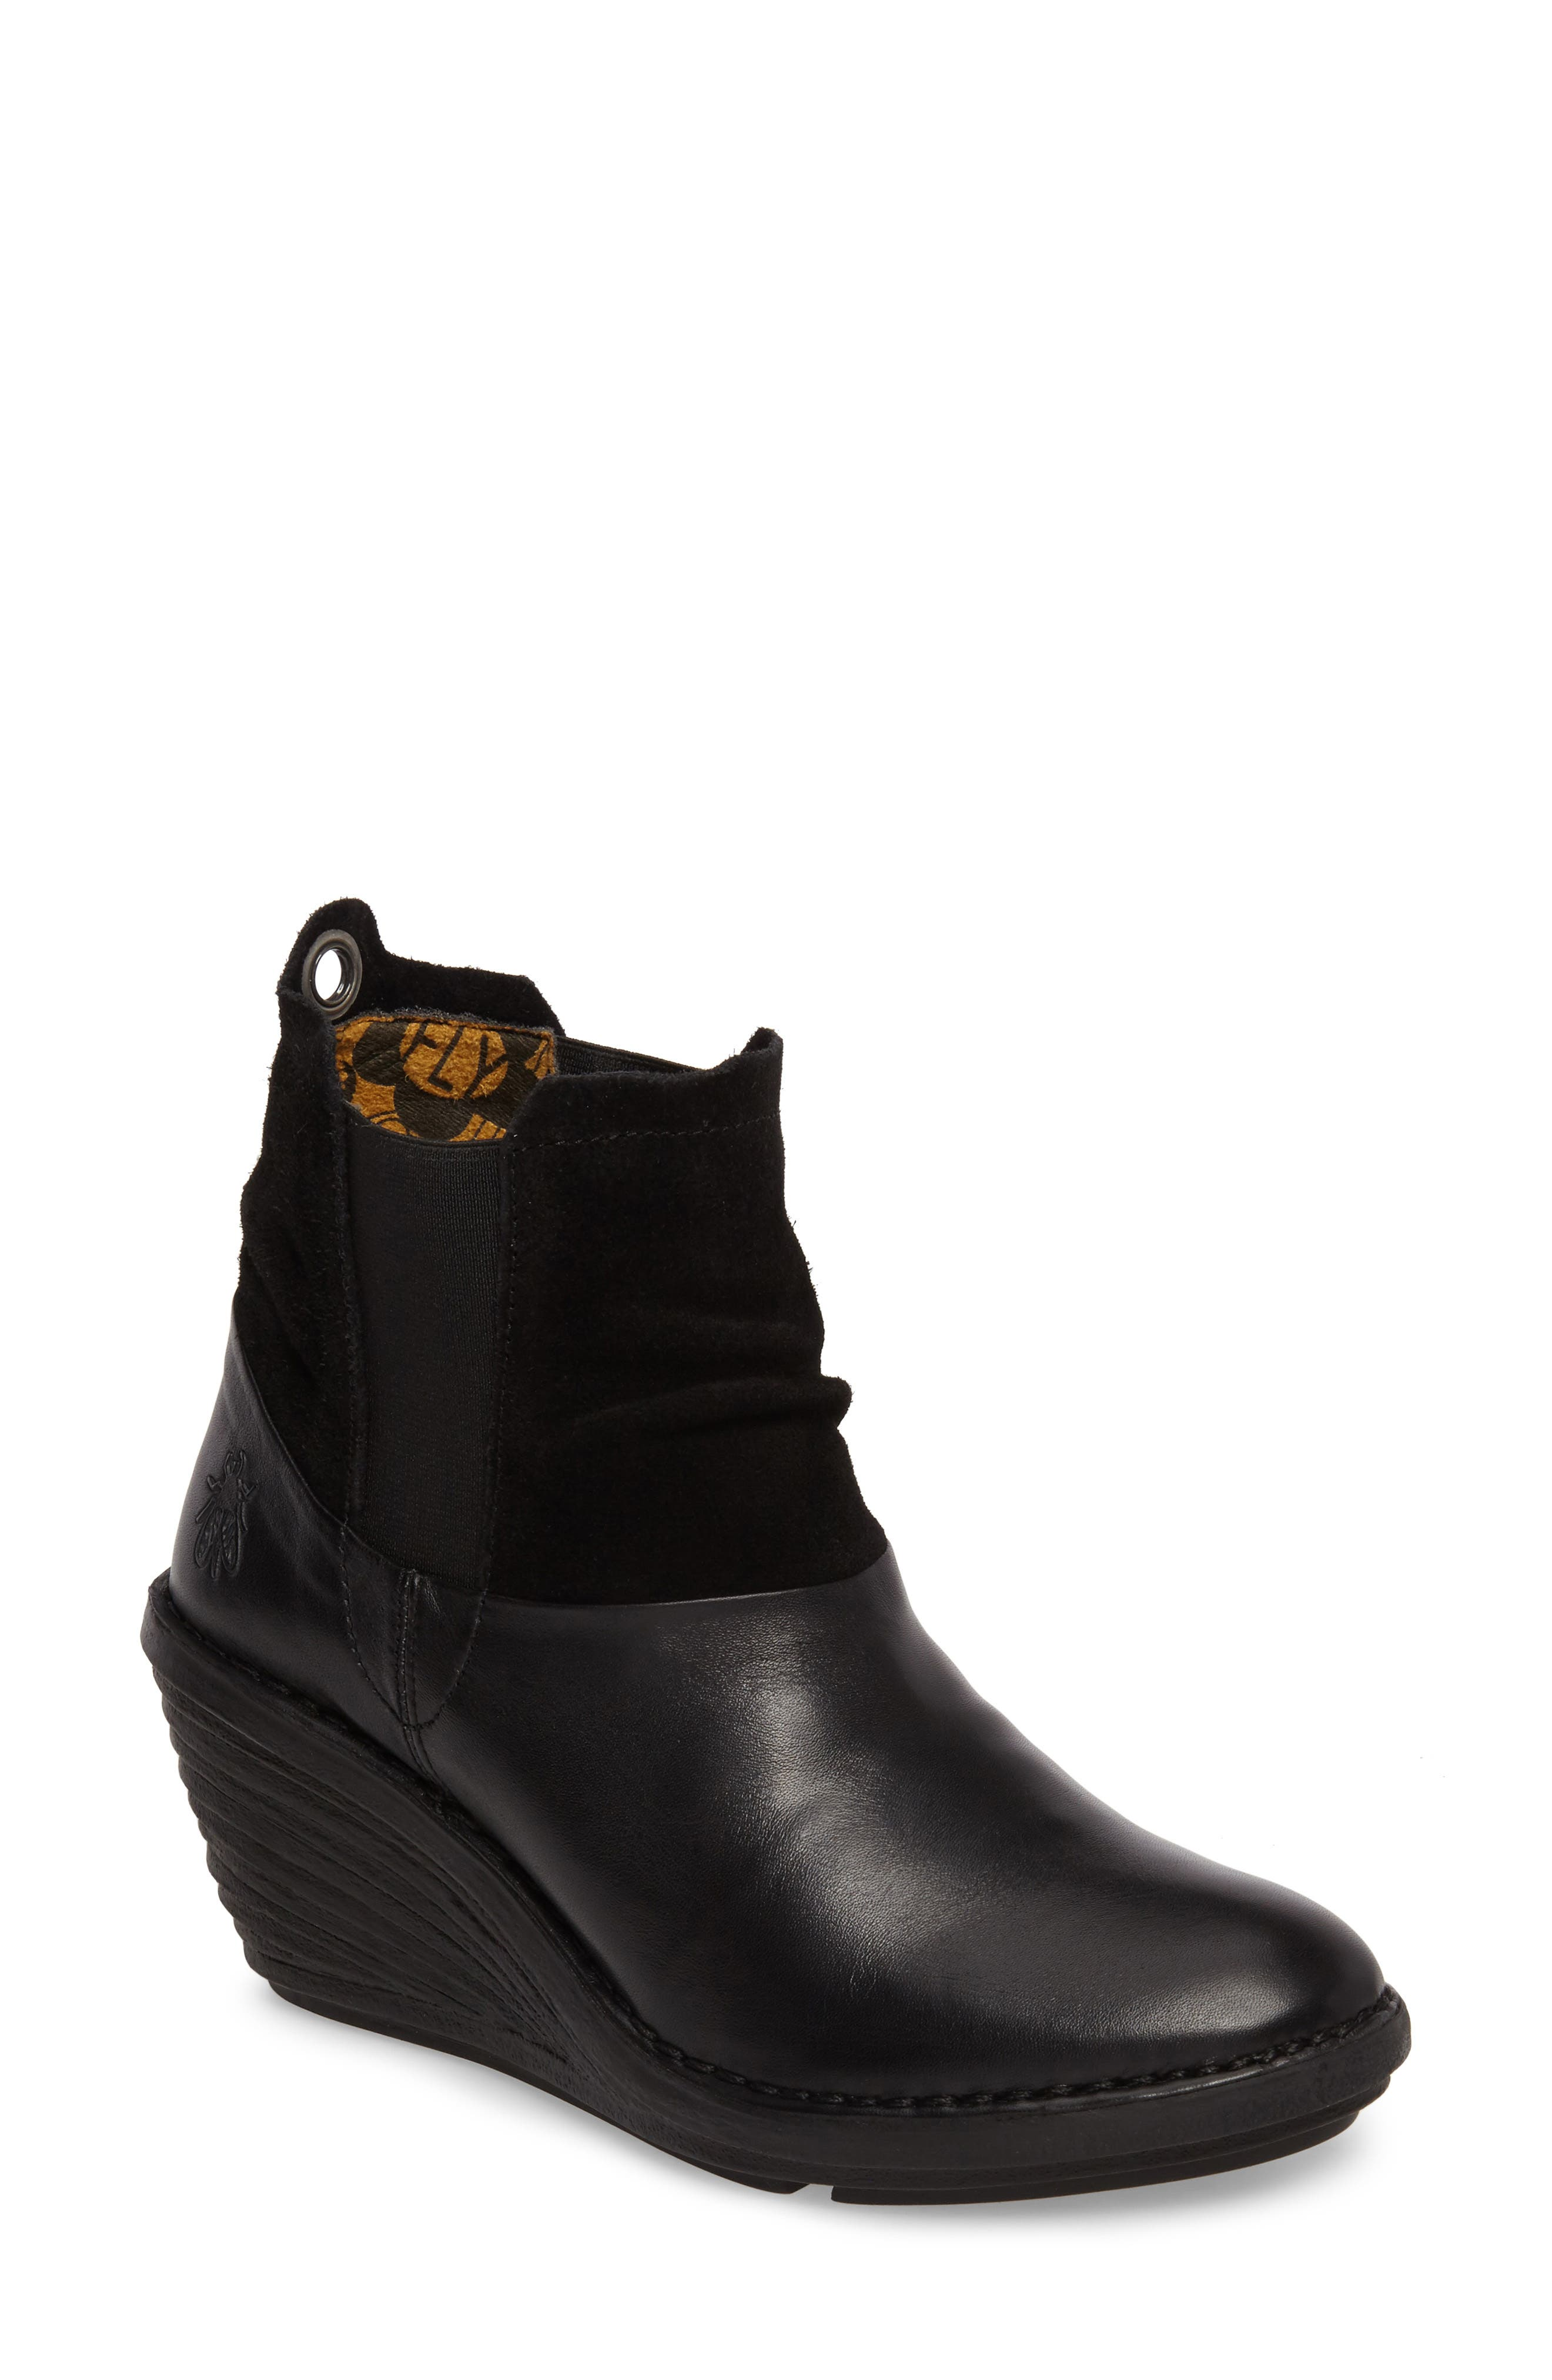 Sula Wedge Bootie,                             Main thumbnail 1, color,                             001